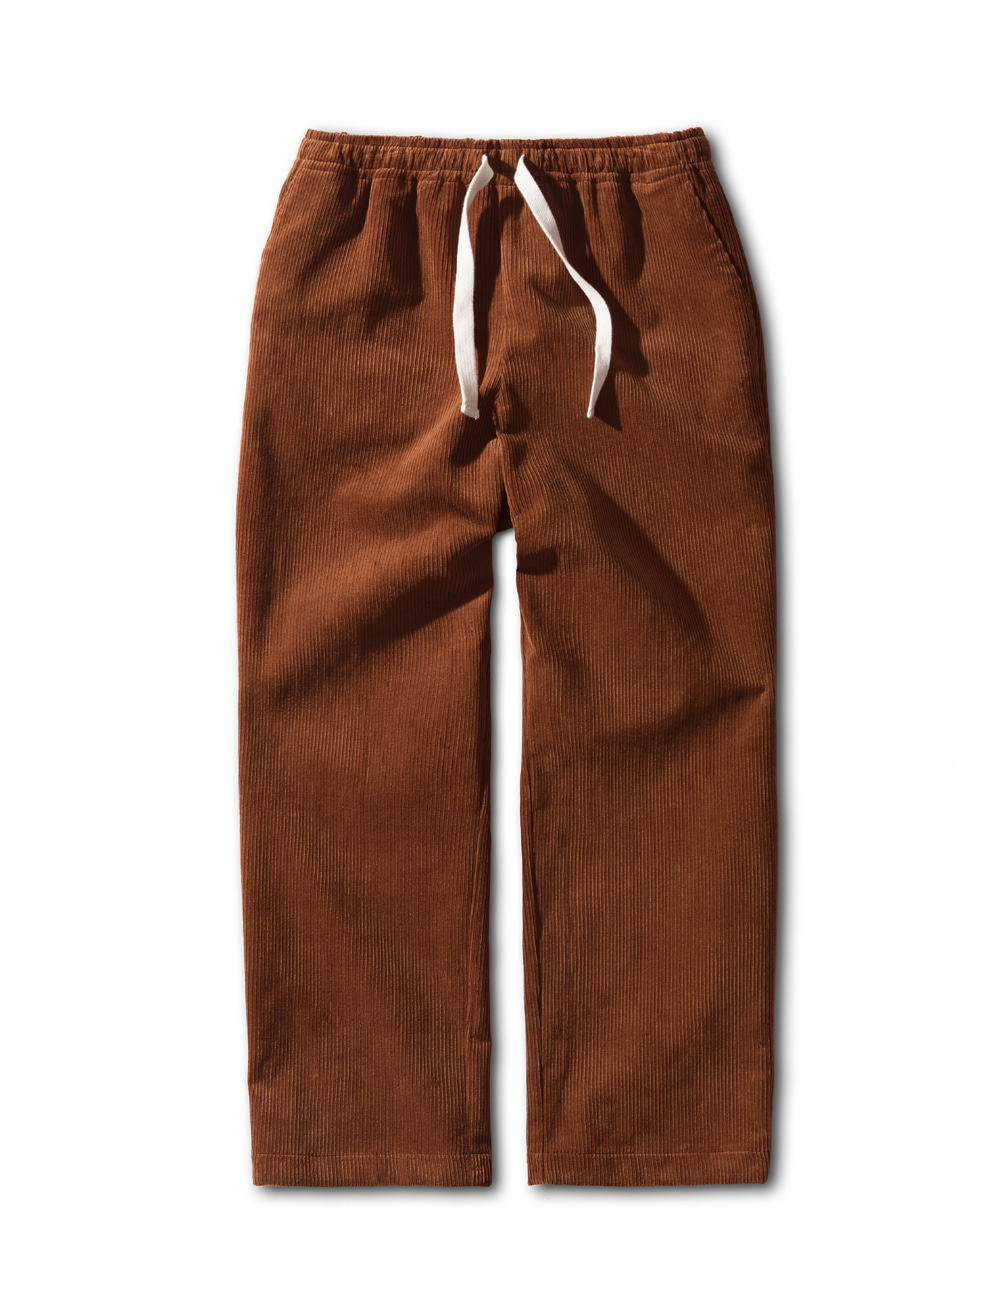 [ESFAI] SN10 CORDUROY SET UP PANTS (BROWN)